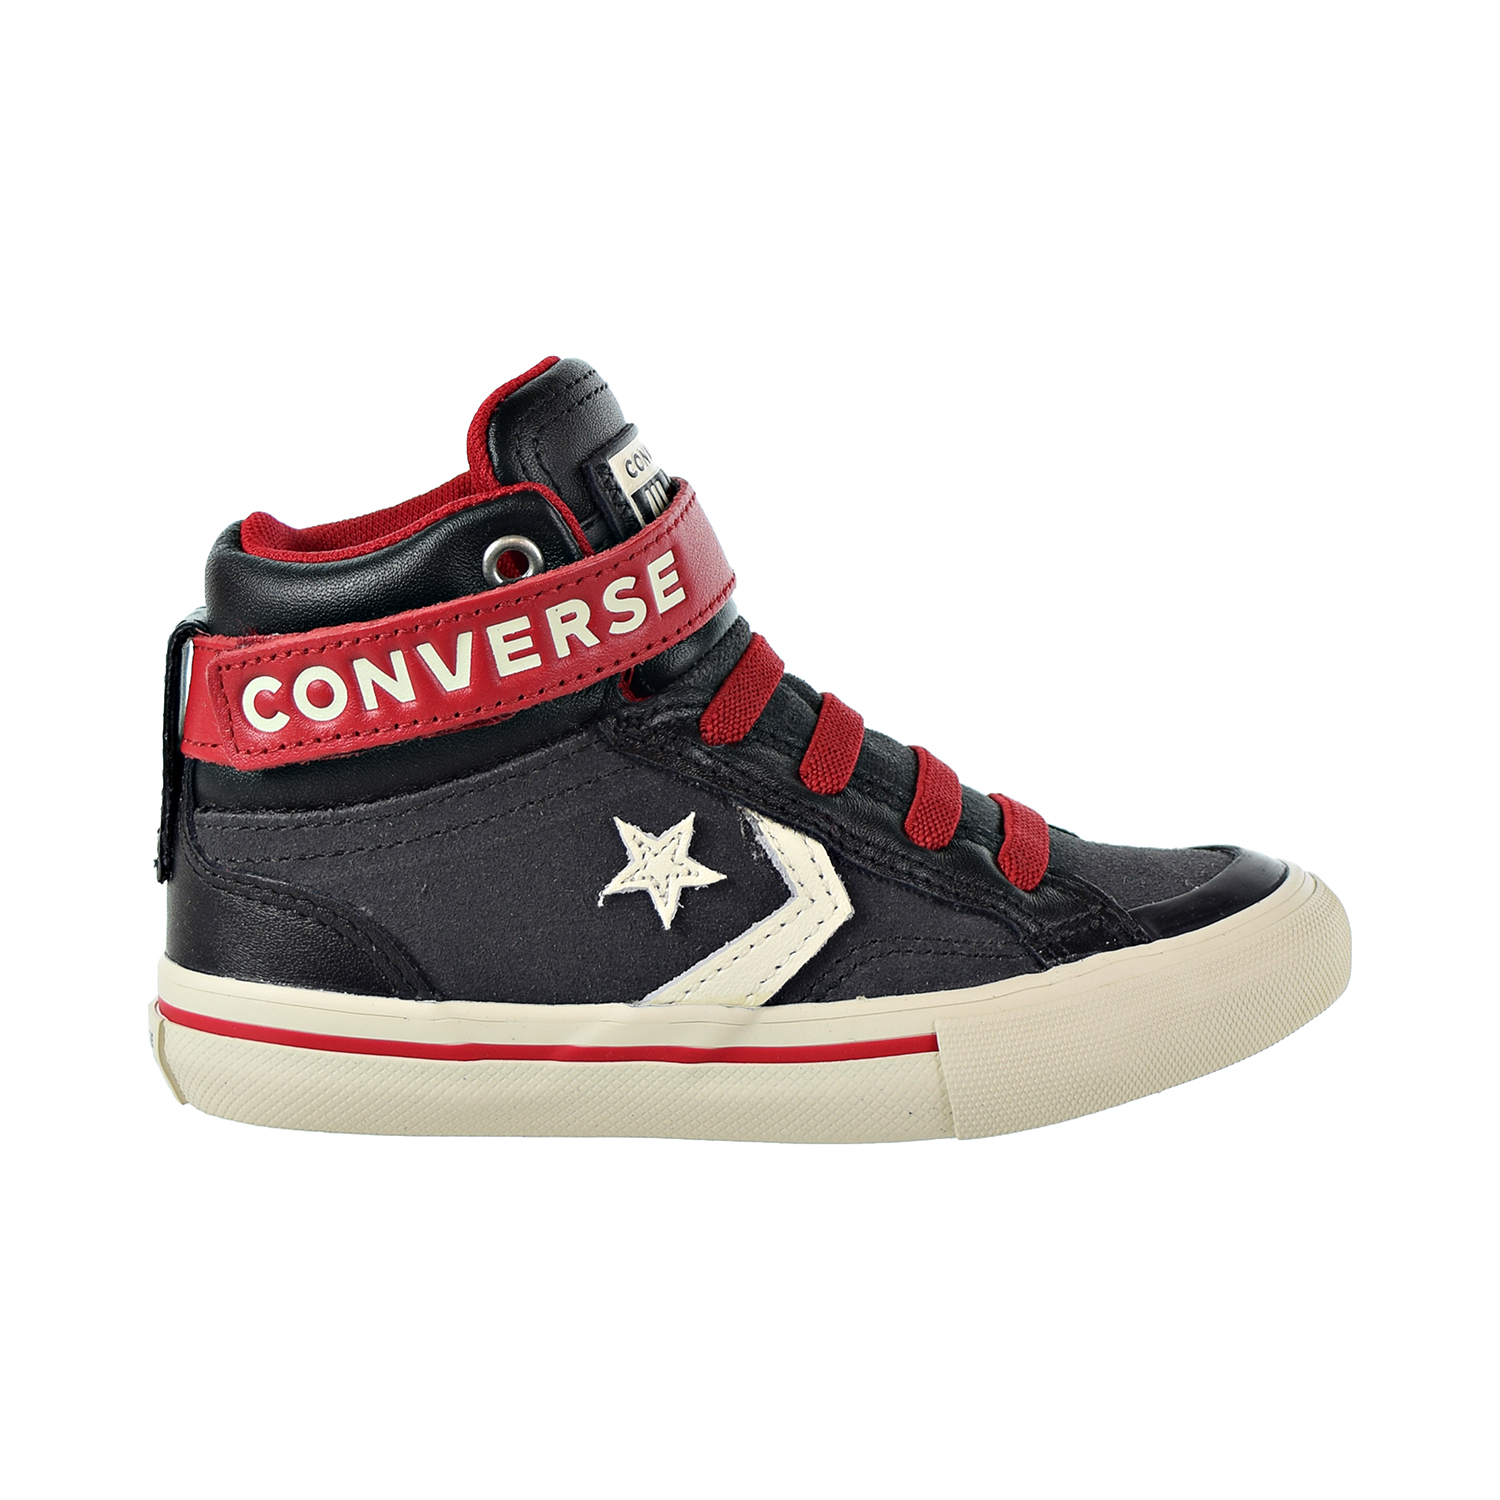 Details about Converse Pro Blaze Strap Hi Kids Shoes Almost  Black-Egret-Turtle Dove 662759c